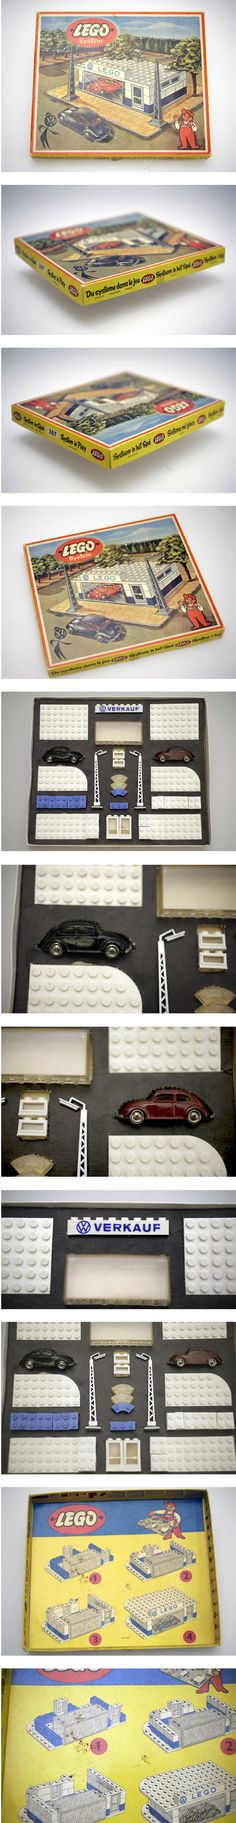 "LEGO SET 307 ""VW VERKAUF"" von 1958 FOR SALE NOW on EBAY.DE  Lego envy"